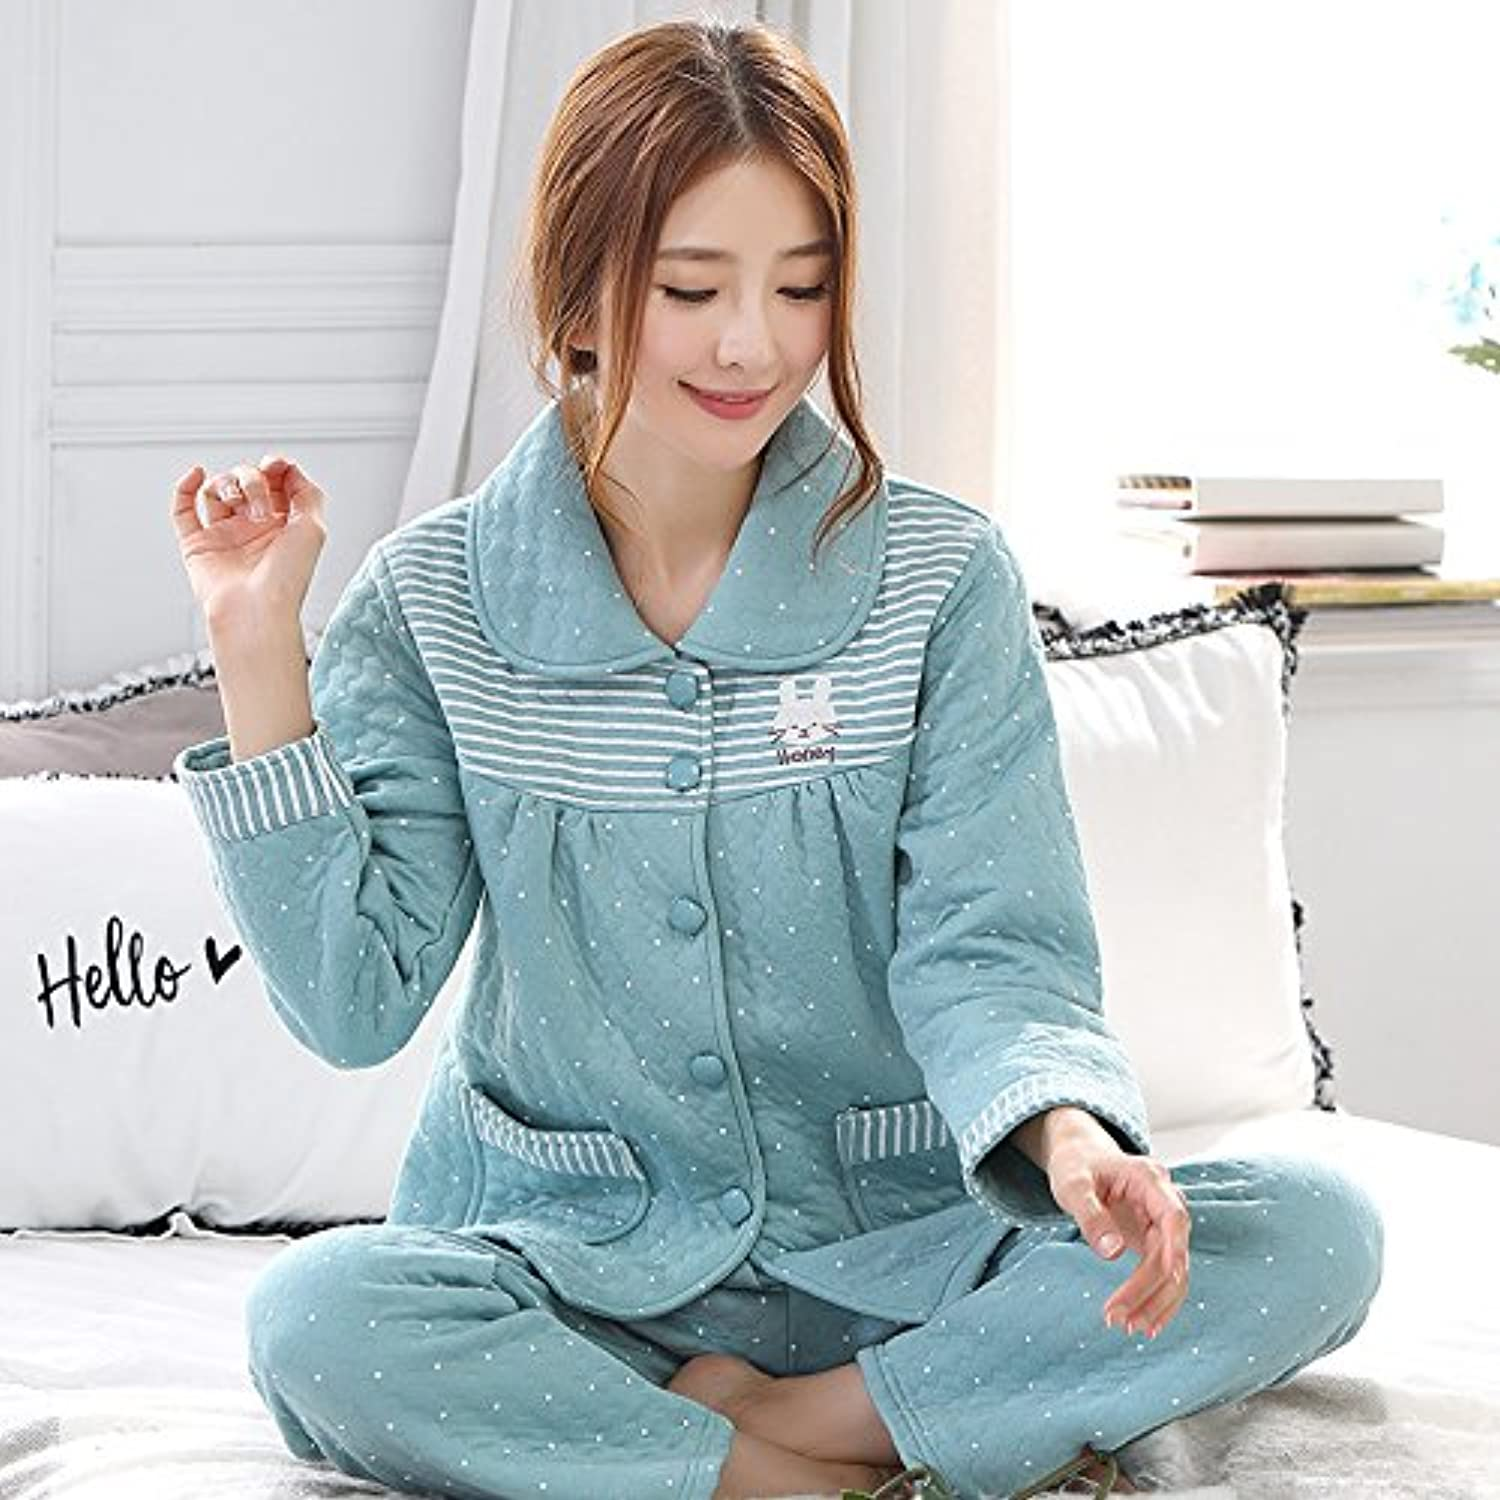 MHRITA Autumn And Winter, Cotton, Air Cotton, Layered Pajamas, Suits, Women'S Cotton, Long Sleeves, Thin Clip, Cotton Thickening, Home Wear, Winter,L Code,2211 Pure Cotton